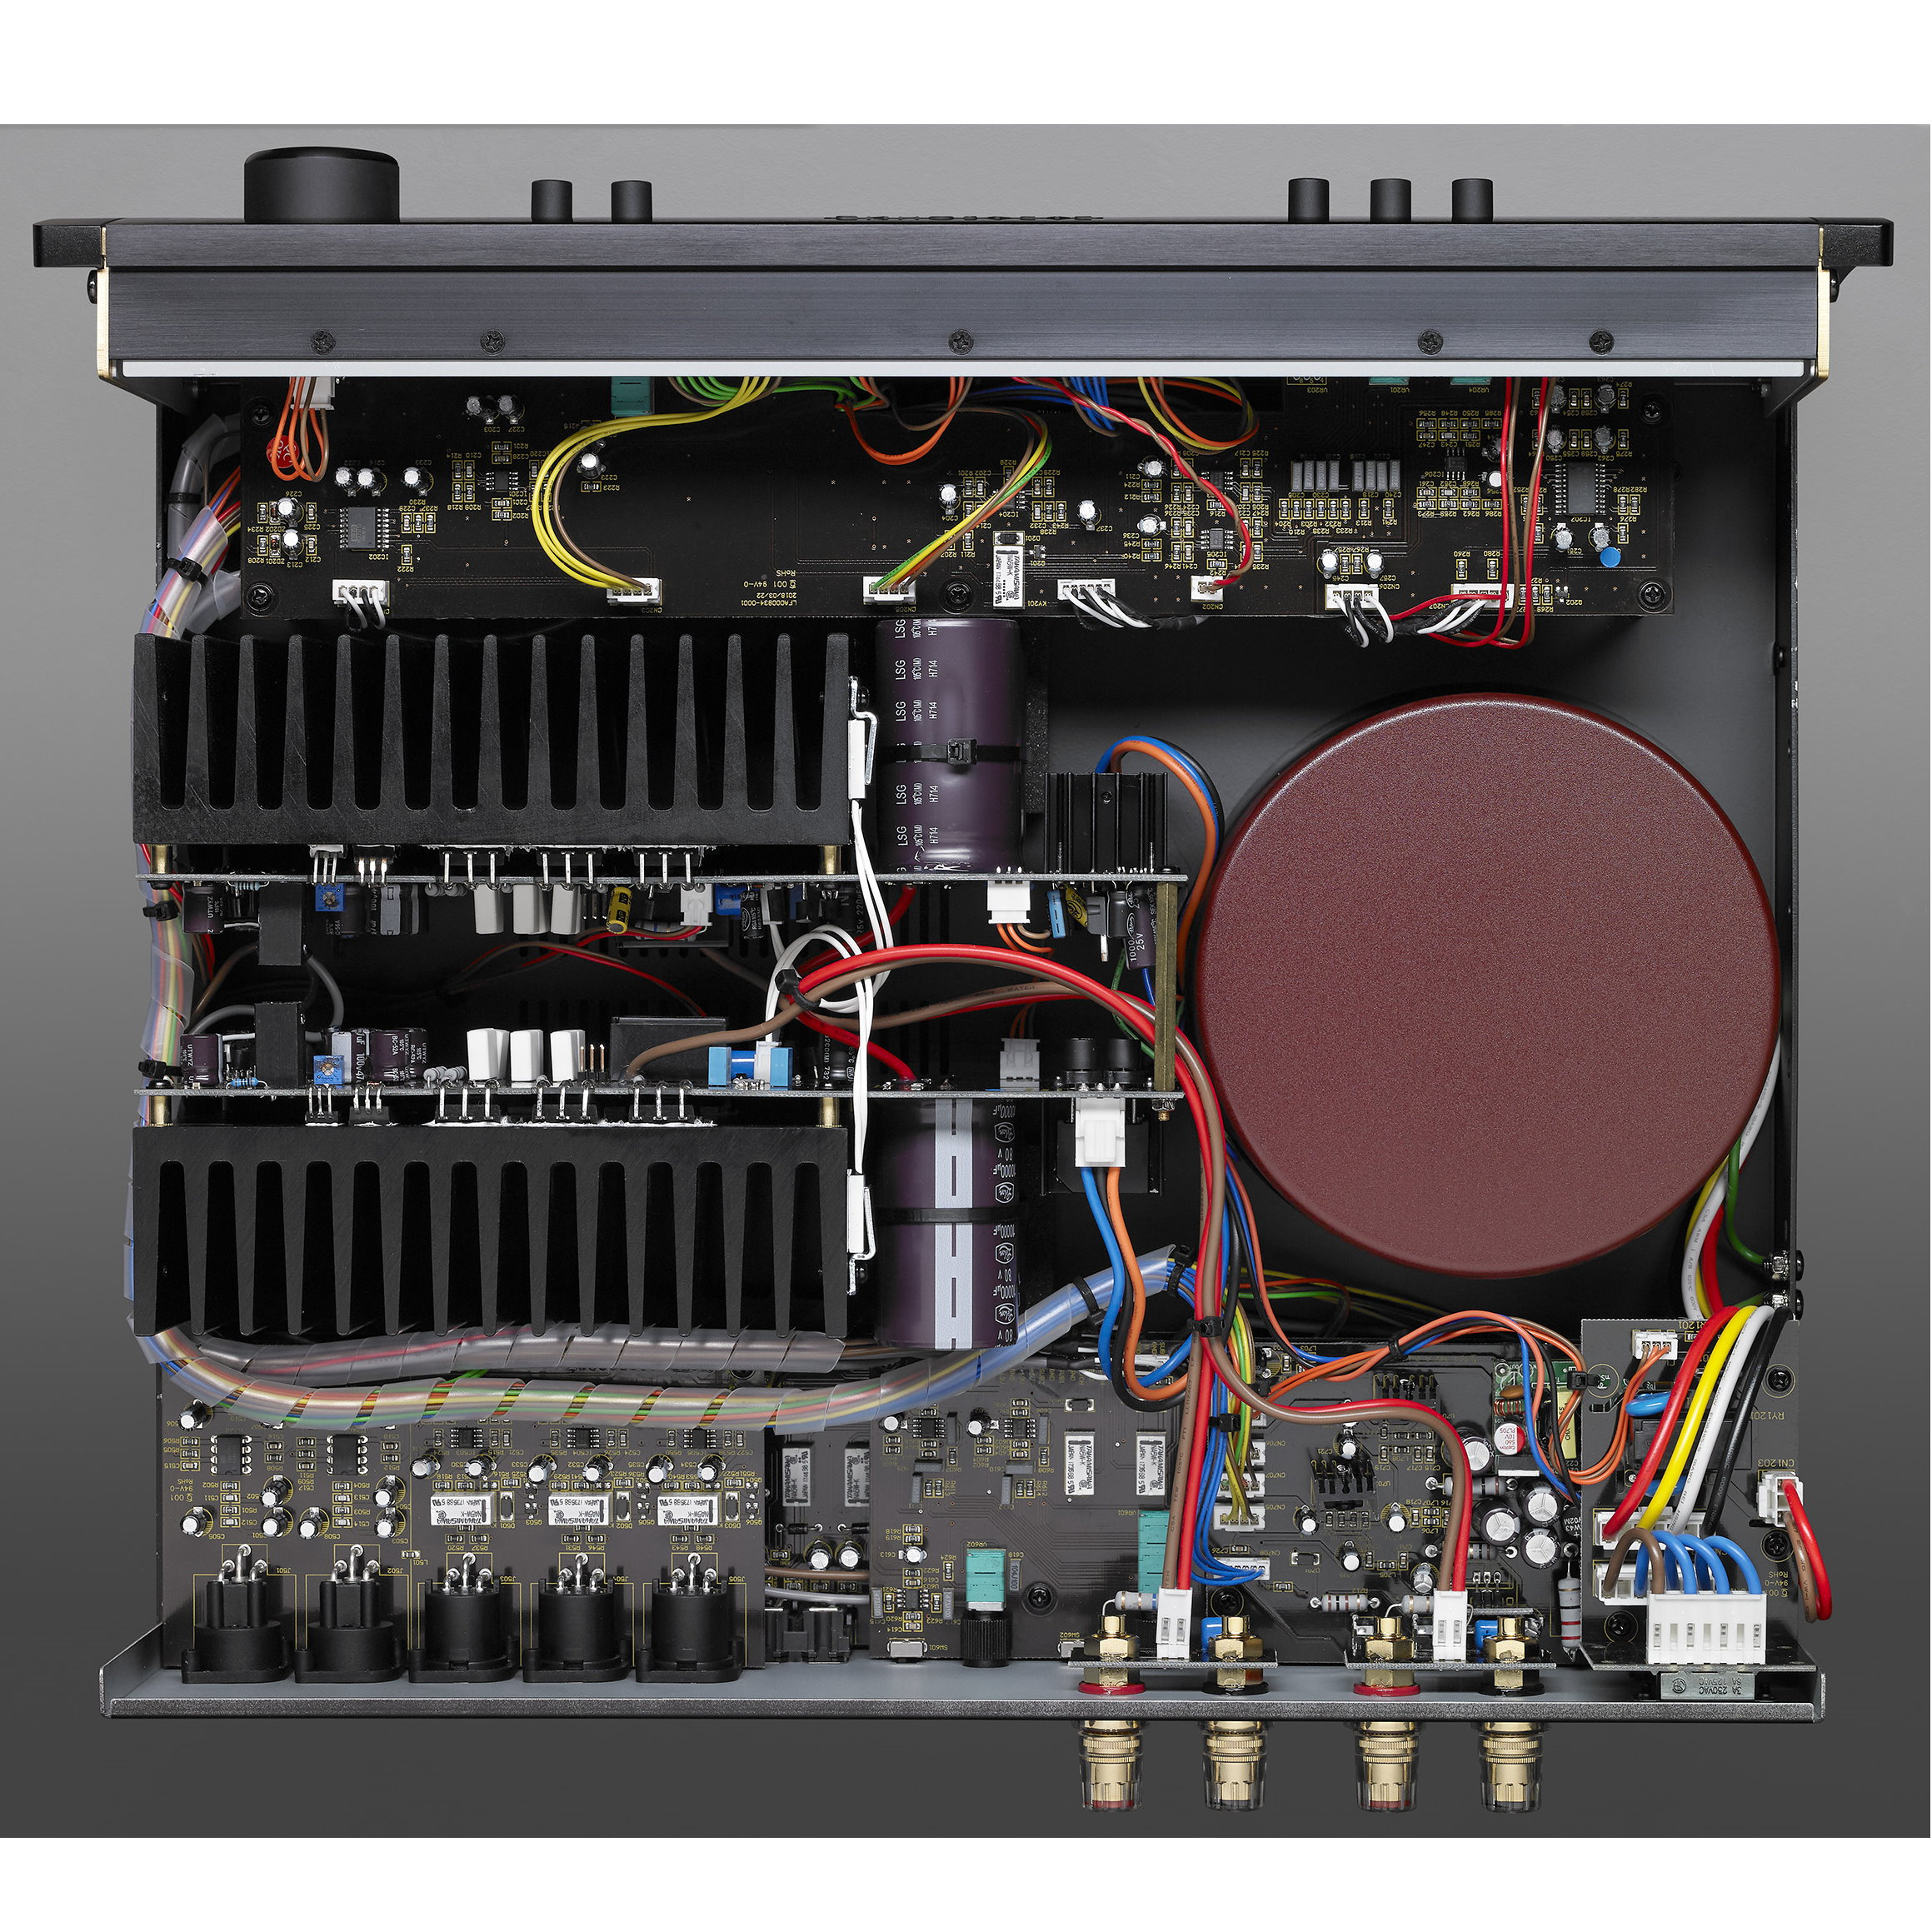 Parasound Halo HINT 6 Integrated Amplifier with DAC